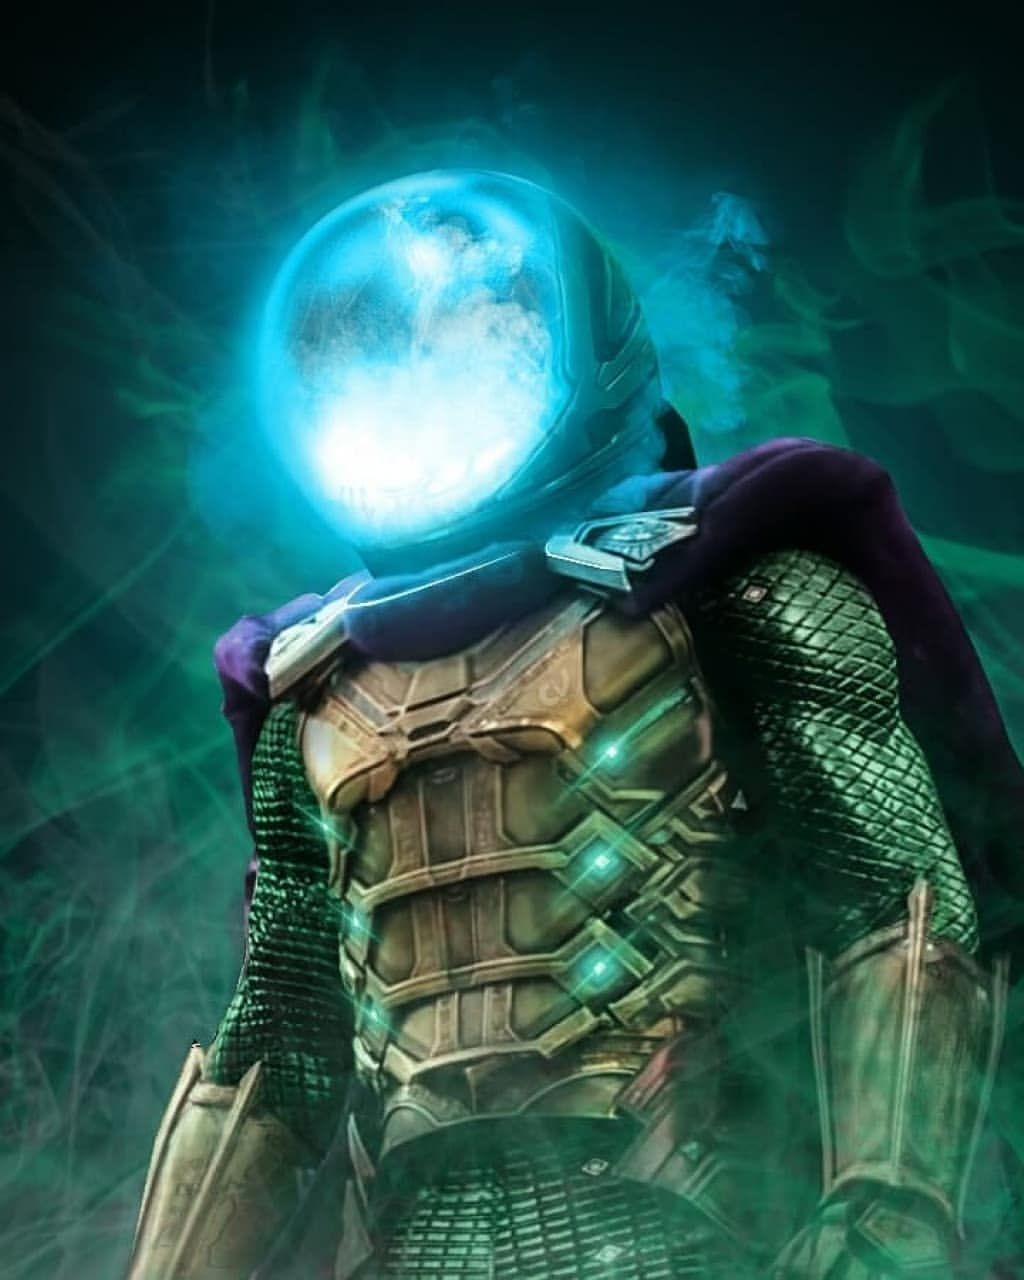 Mysterio 4k Android Wallpapers - Wallpaper Cave